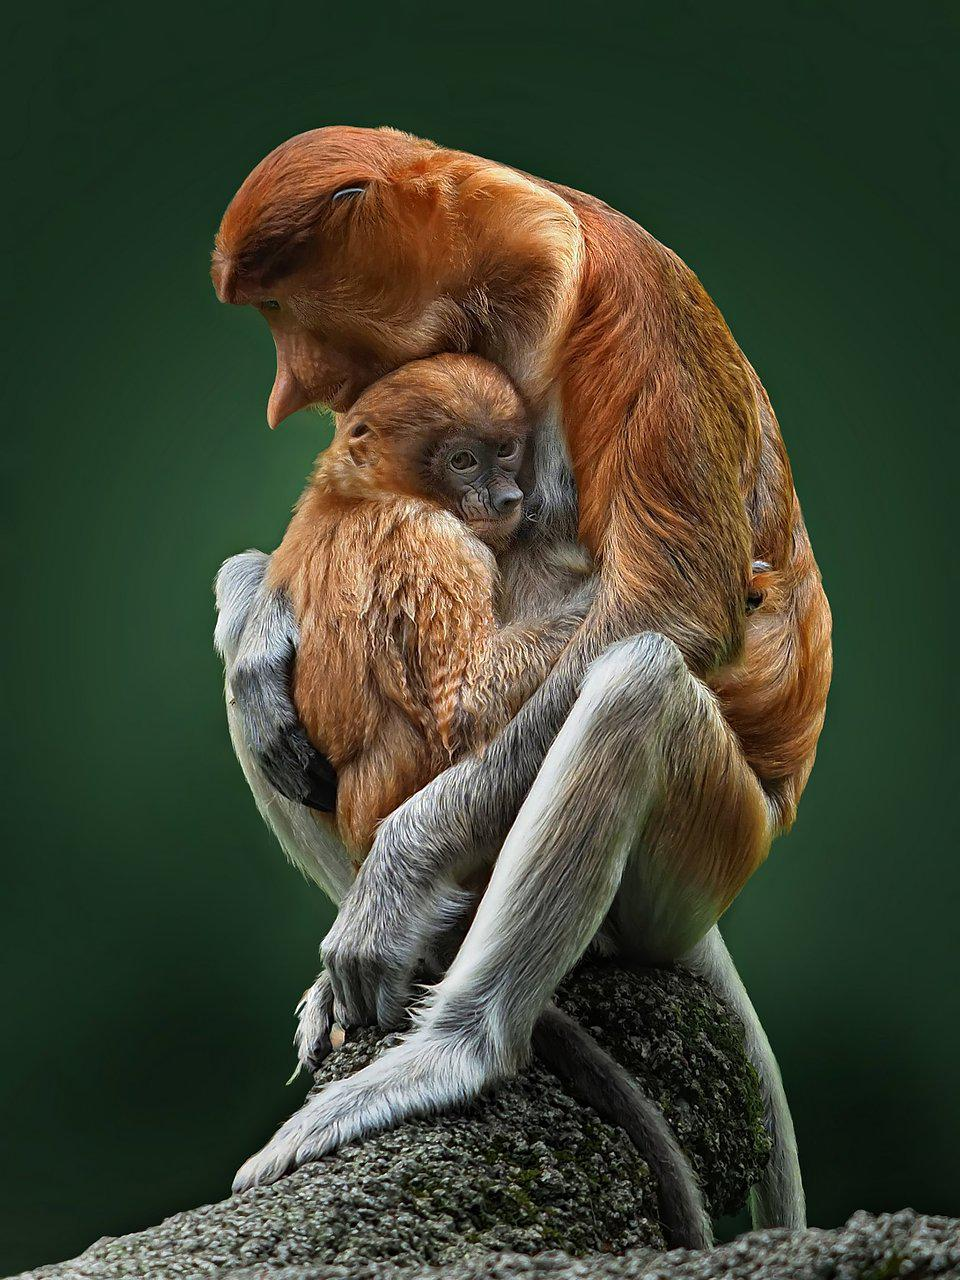 Best Animal Photos Agora Contest, mother monkey with baby